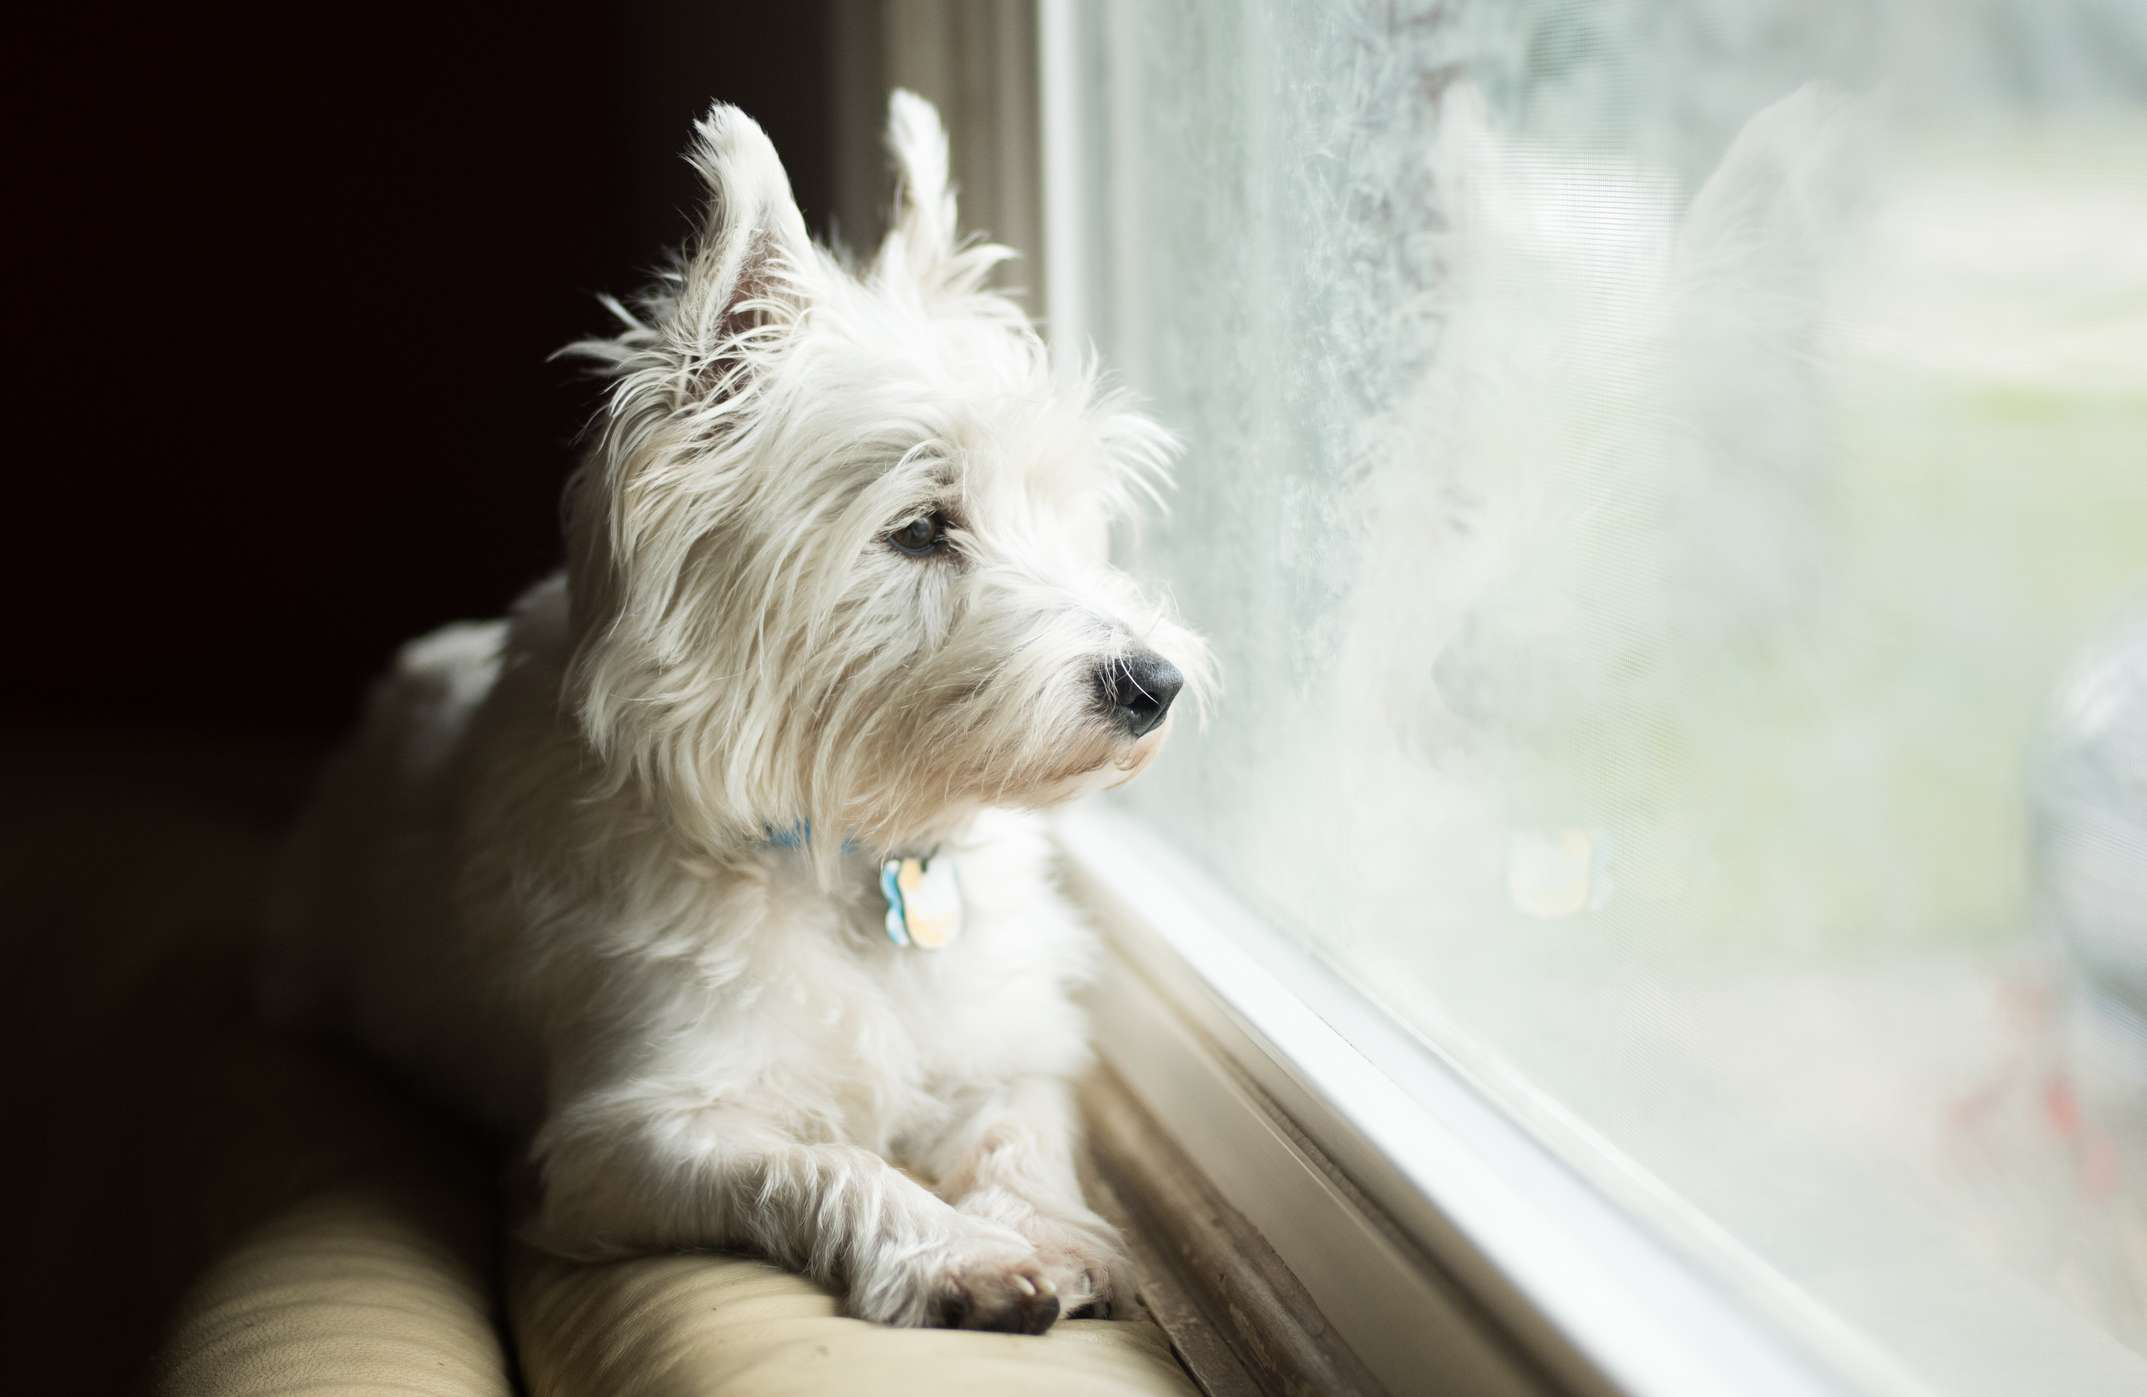 A white dog with pointy ears looking out a window.